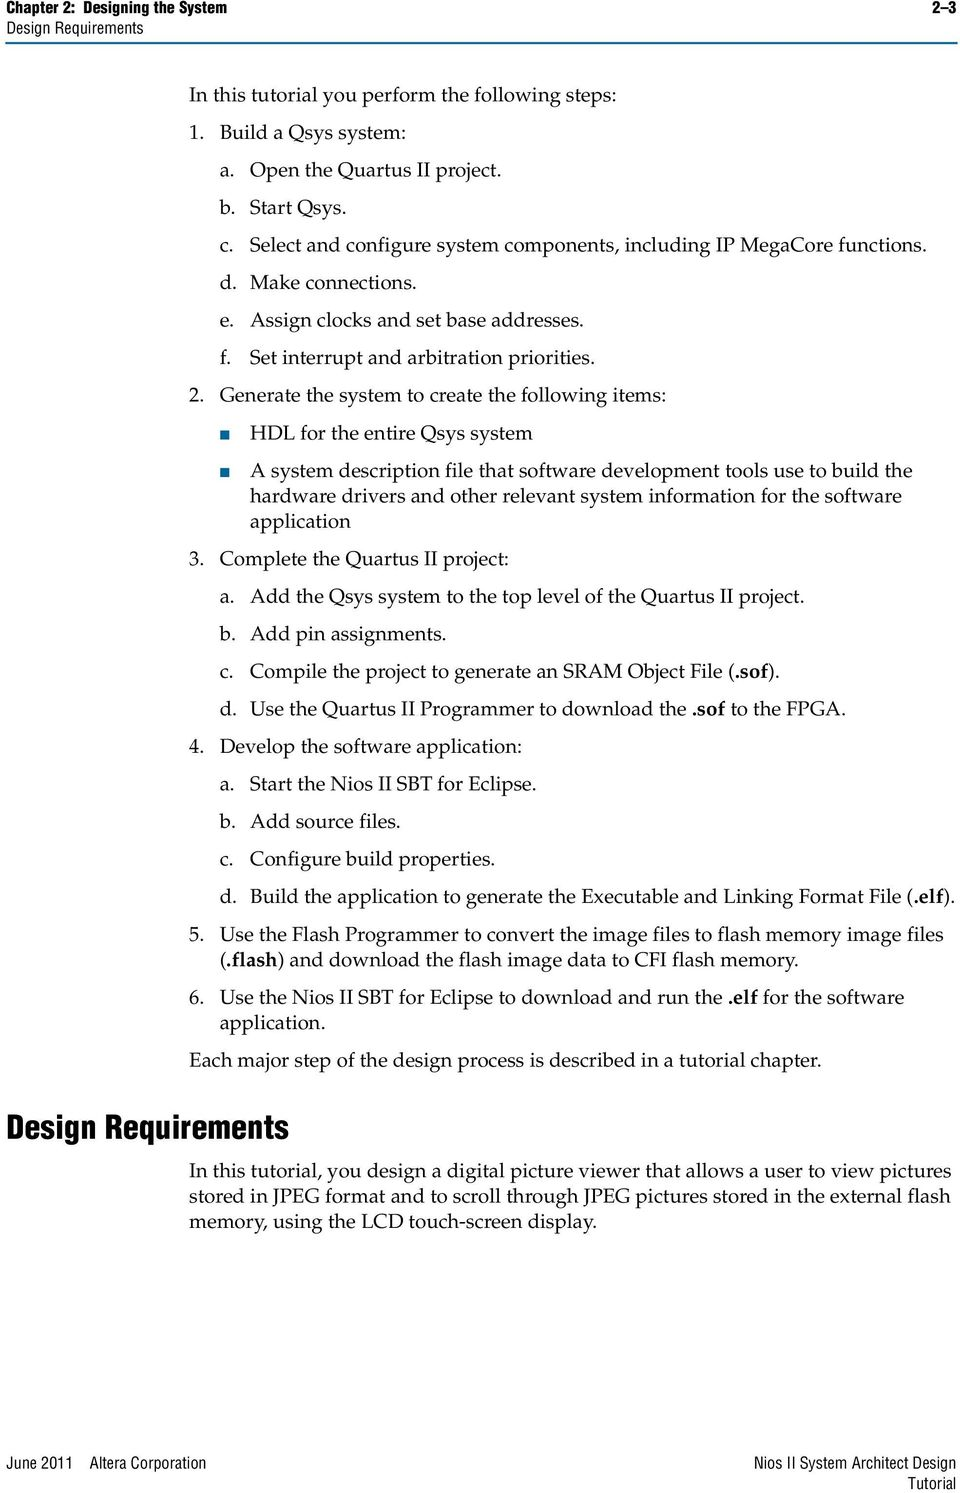 Nios Ii System Architect Design Tutorial Pdf Quartus 2 Block Diagram Generate The To Create Following Items Hdl For Entire Qsys A